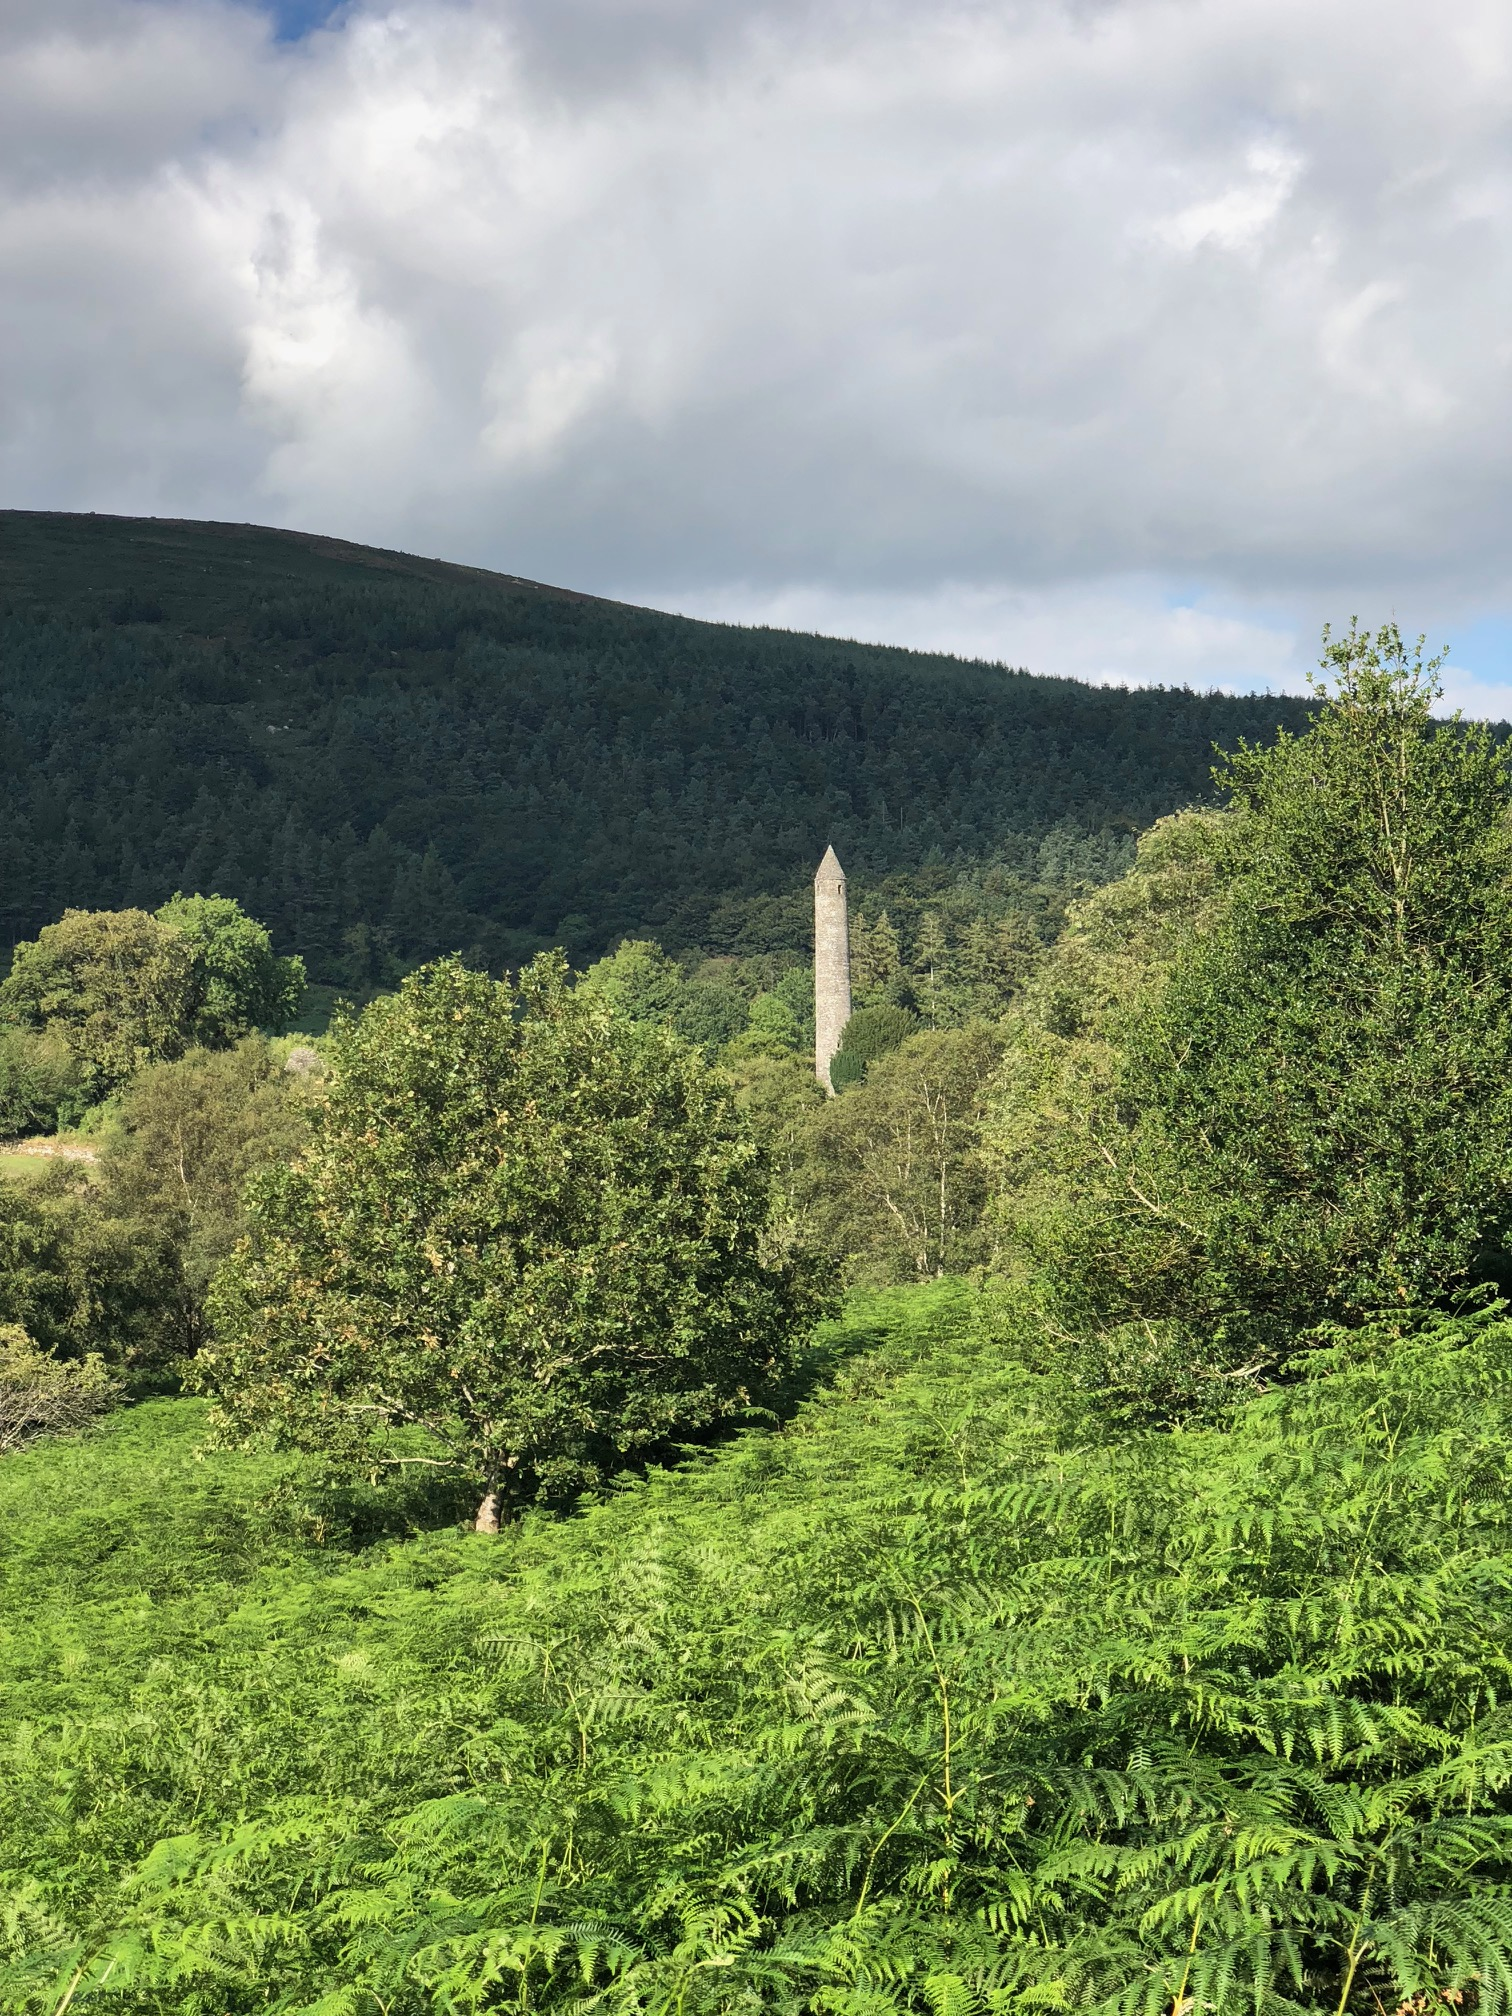 A round stone tower with a conical roof sticks out above the trees, before a dark hills.